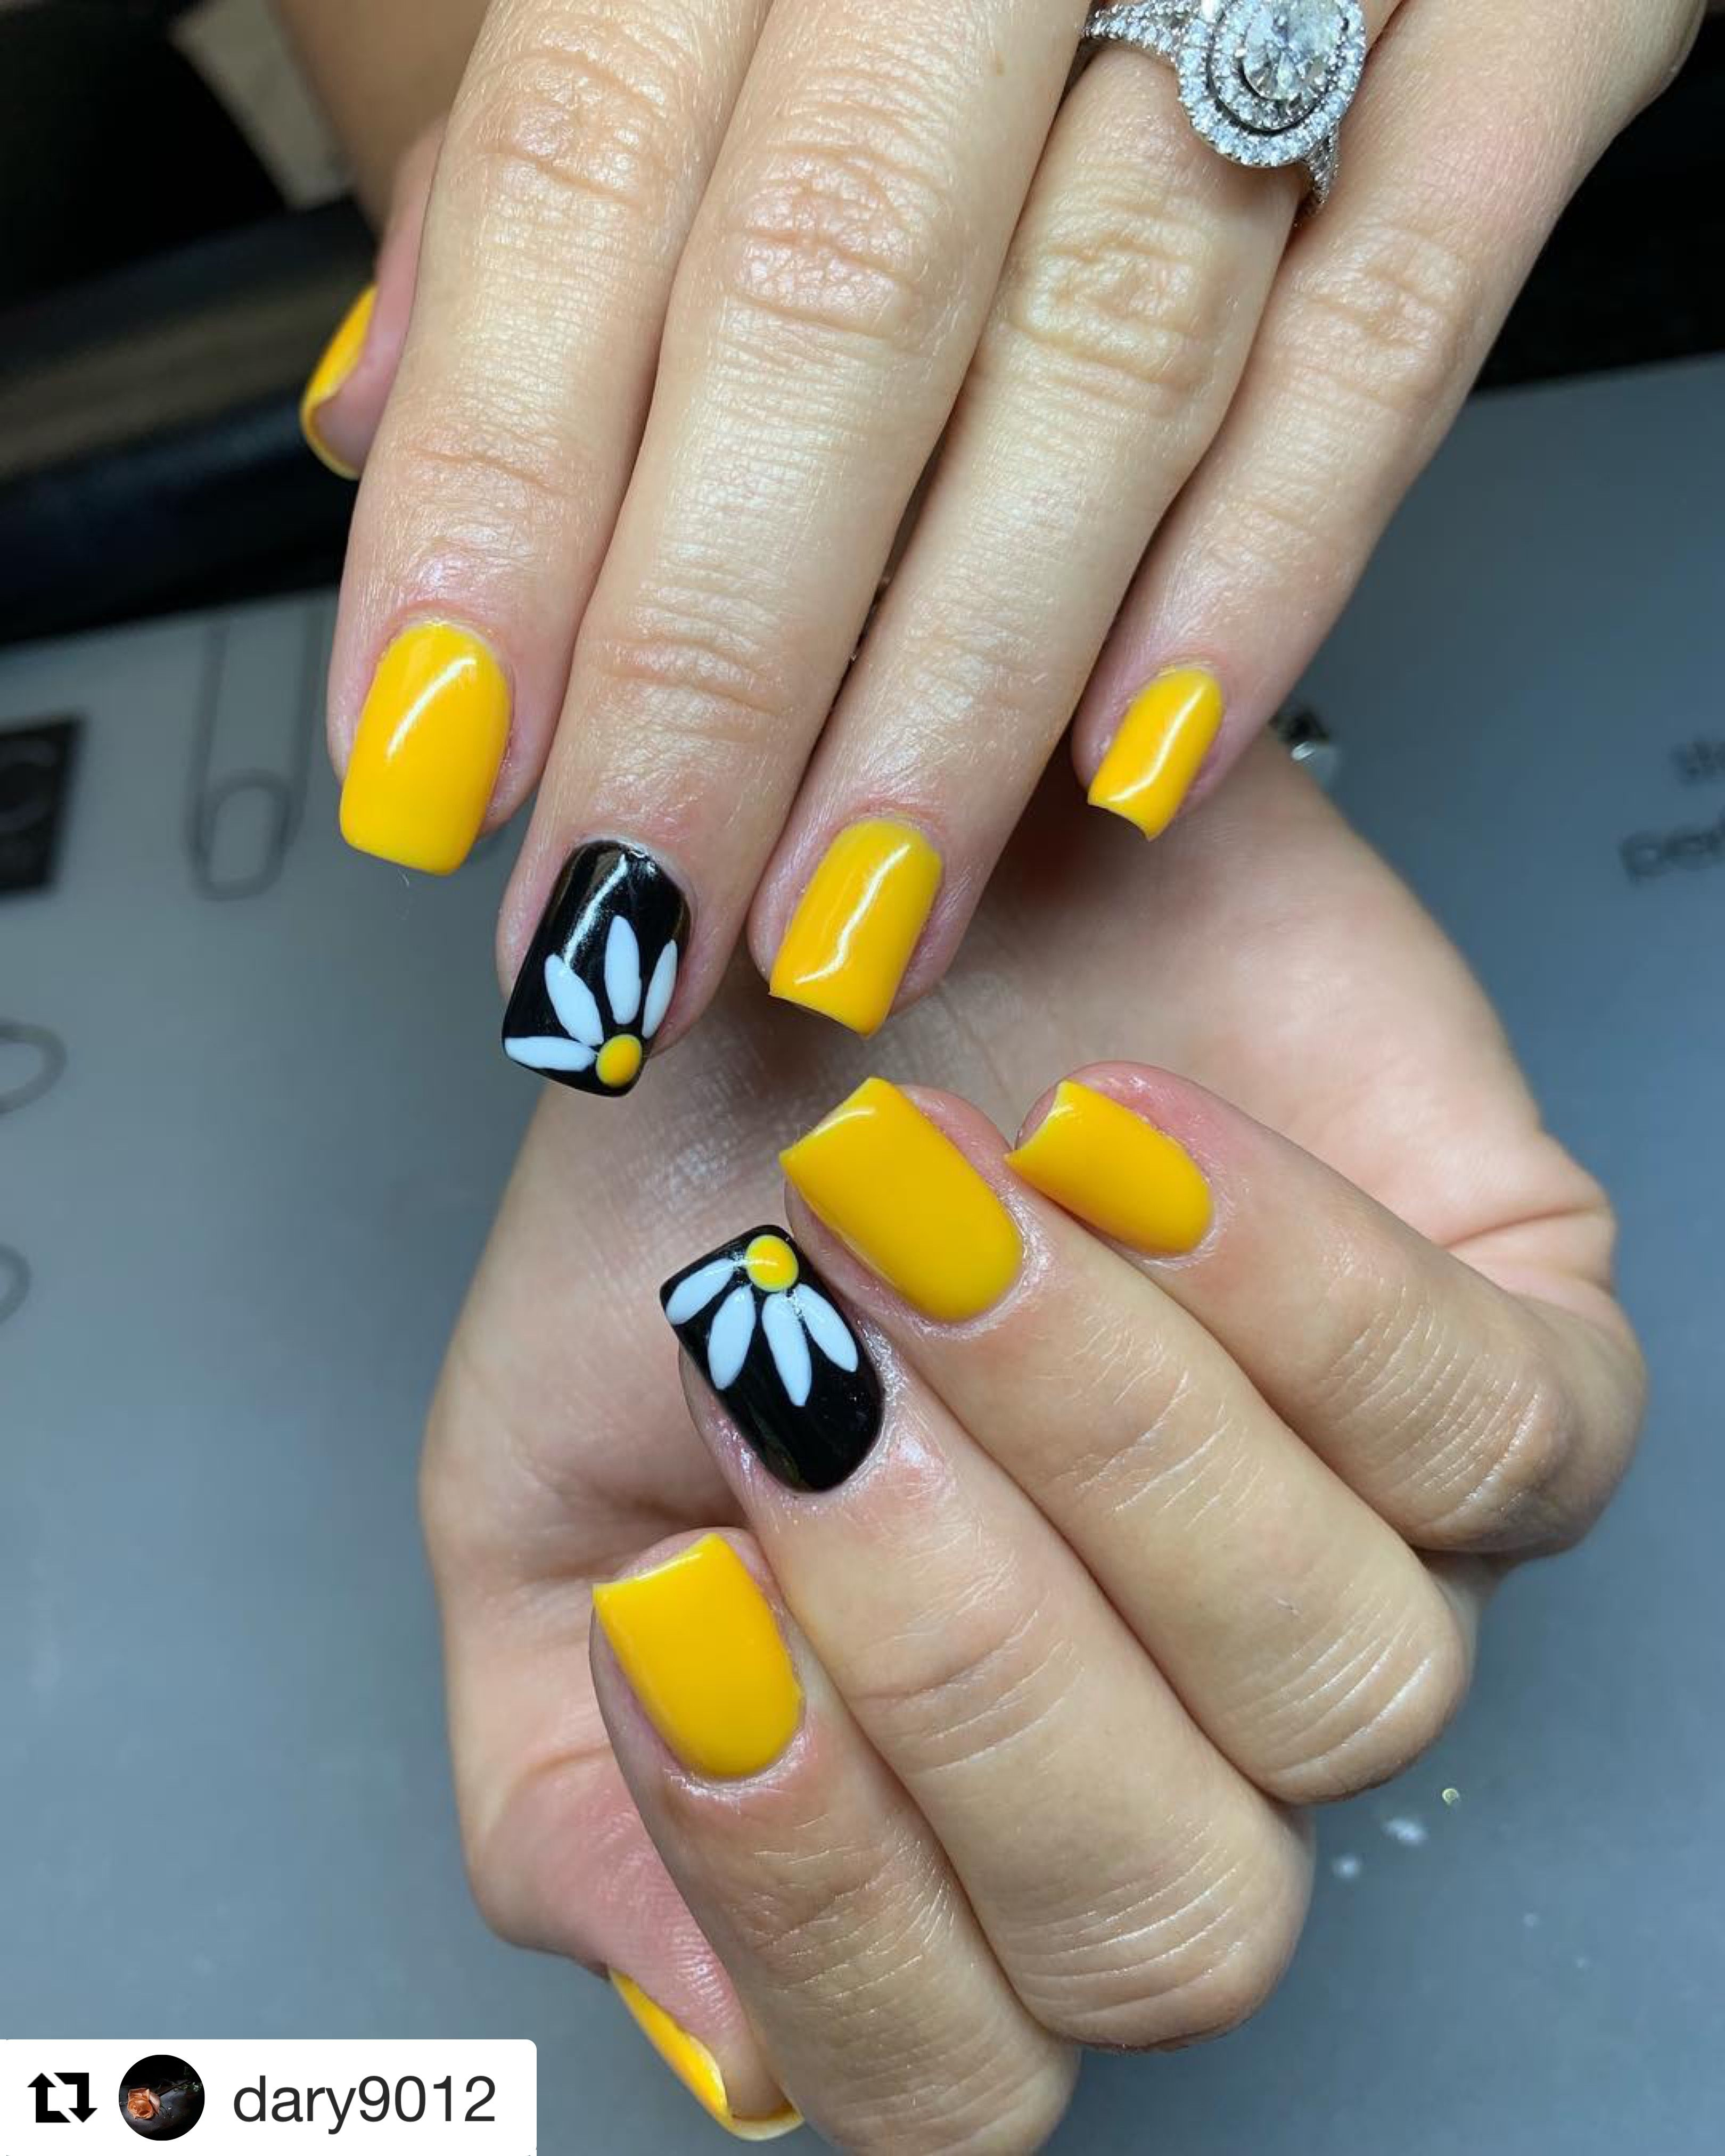 Nail Design Flower Nails Black And Yellow Daisy Summer Ready Spring Flower Nails Daisy Nails Flower Nails Yellow Nails Design